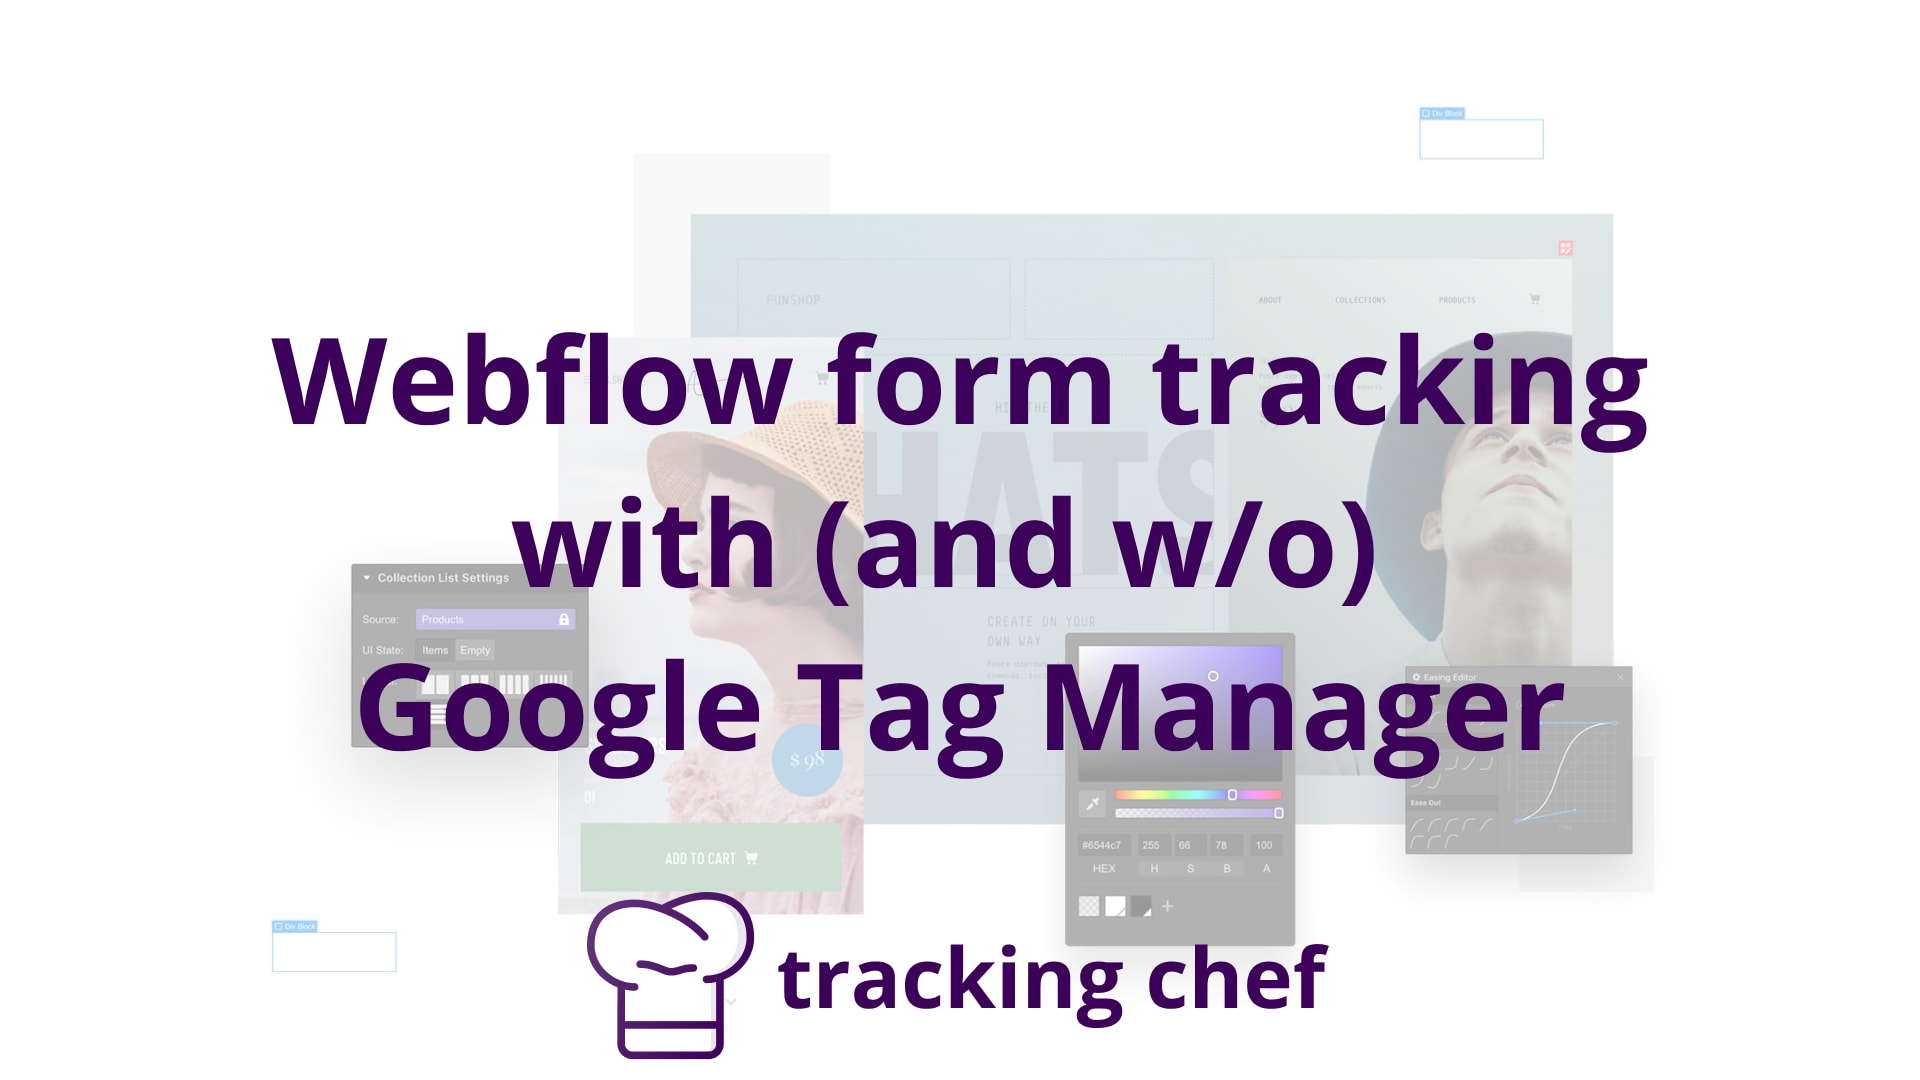 Webflow form tracking with (and w/o) Google Tag Manager